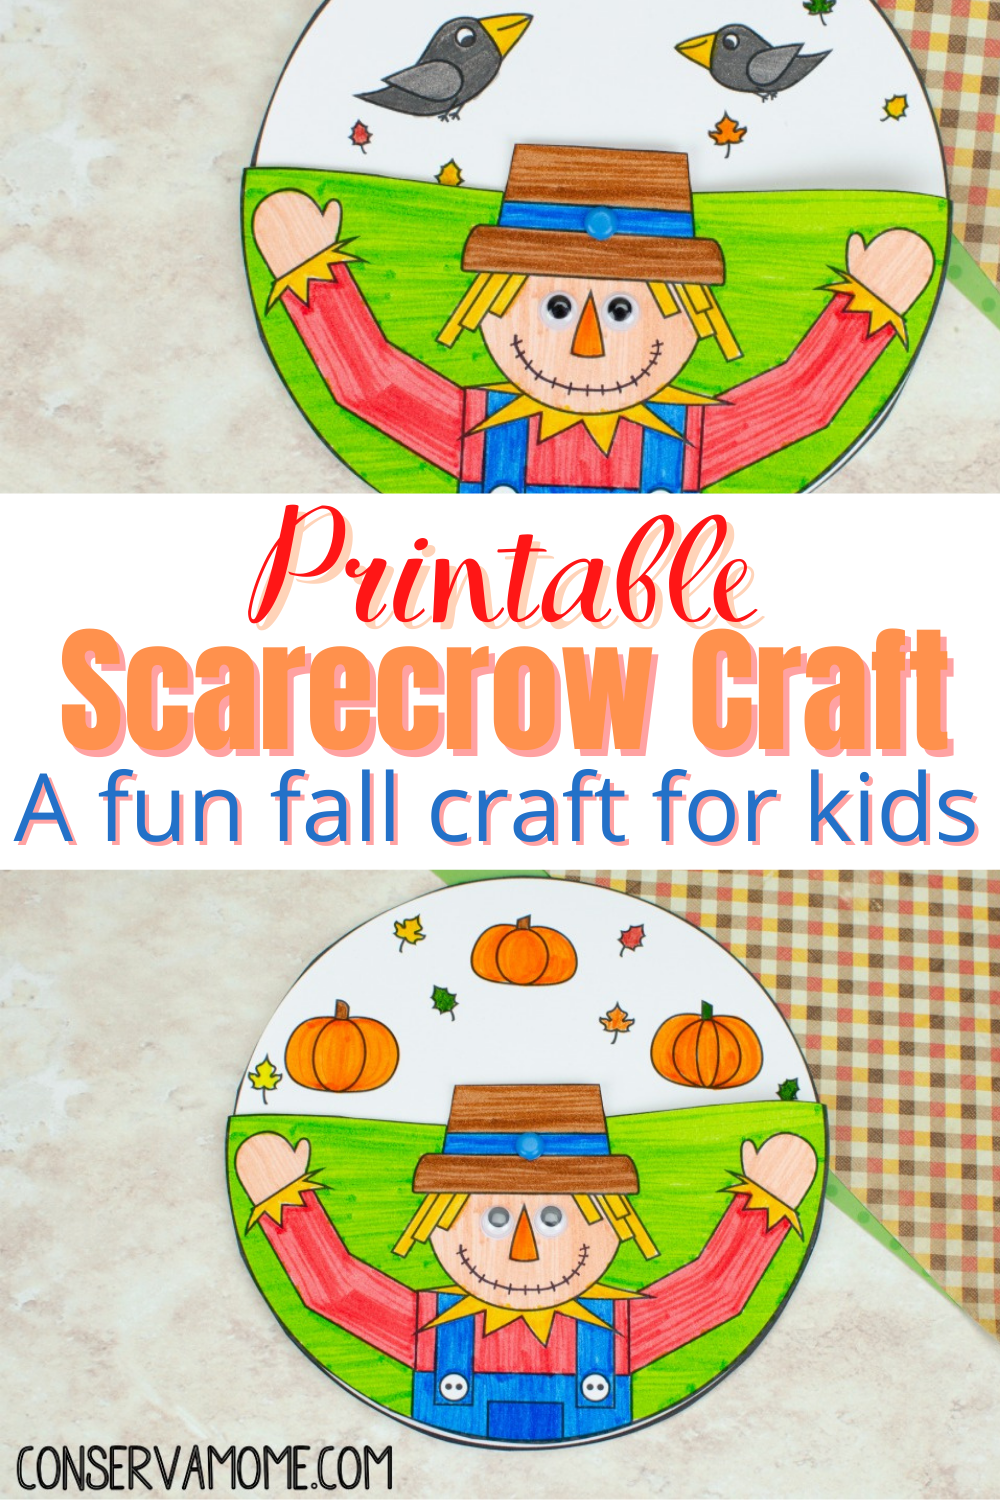 Printable Scarecrow Craft- A fun fall craft for kids